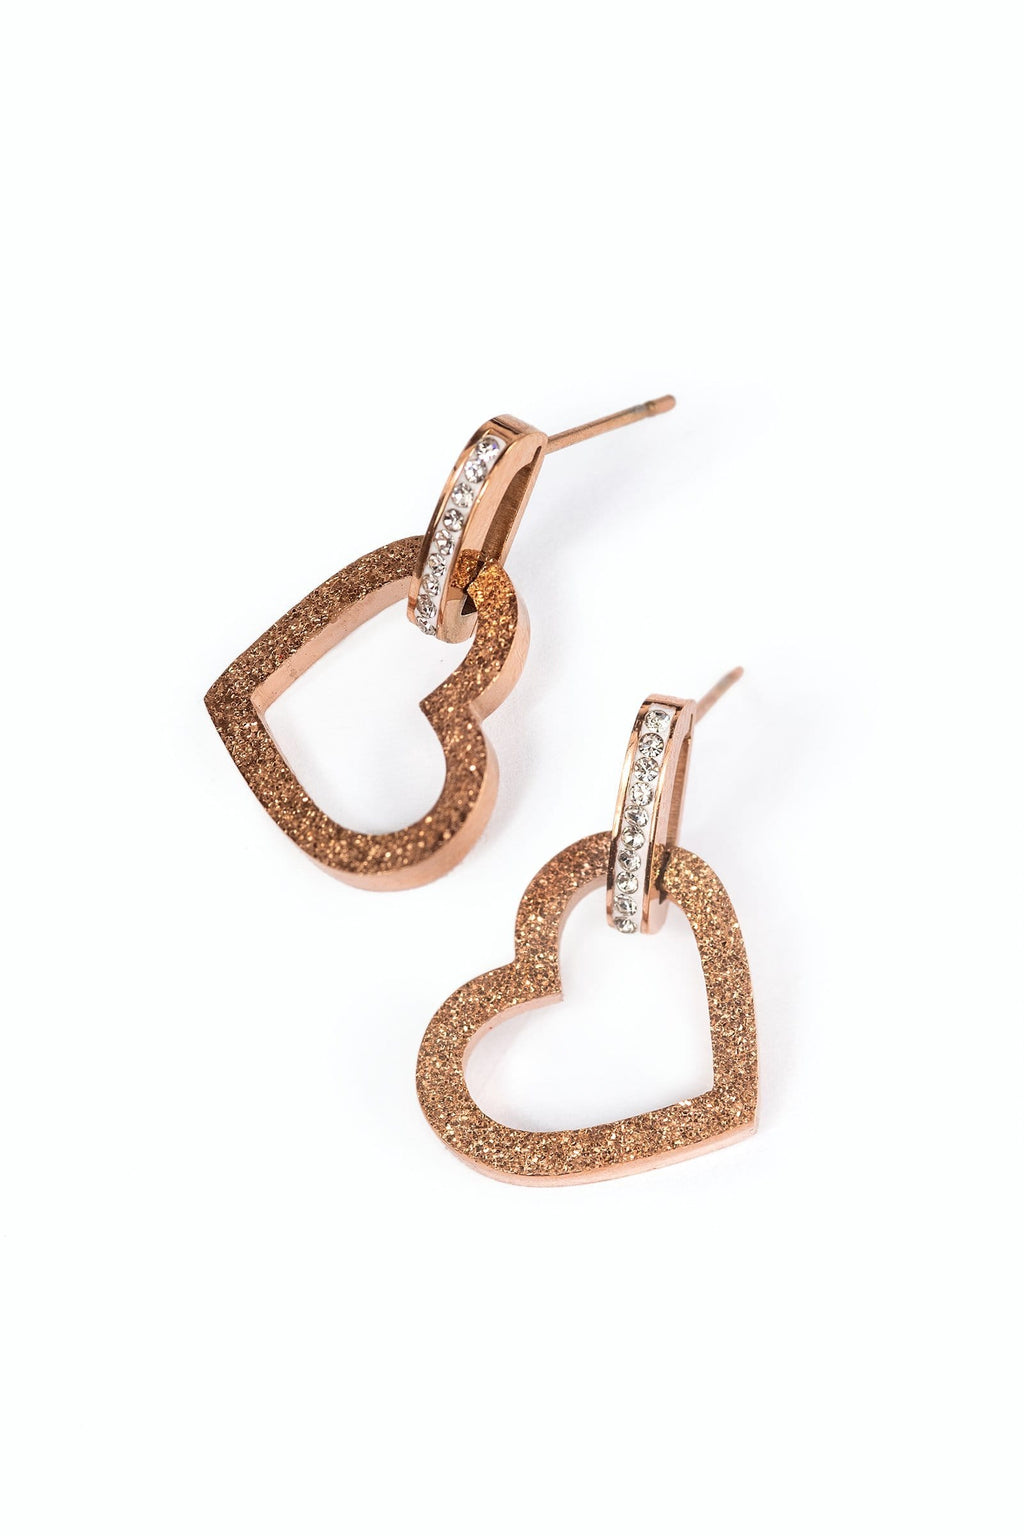 Two of Hearts Earring by J.ING women's accessories